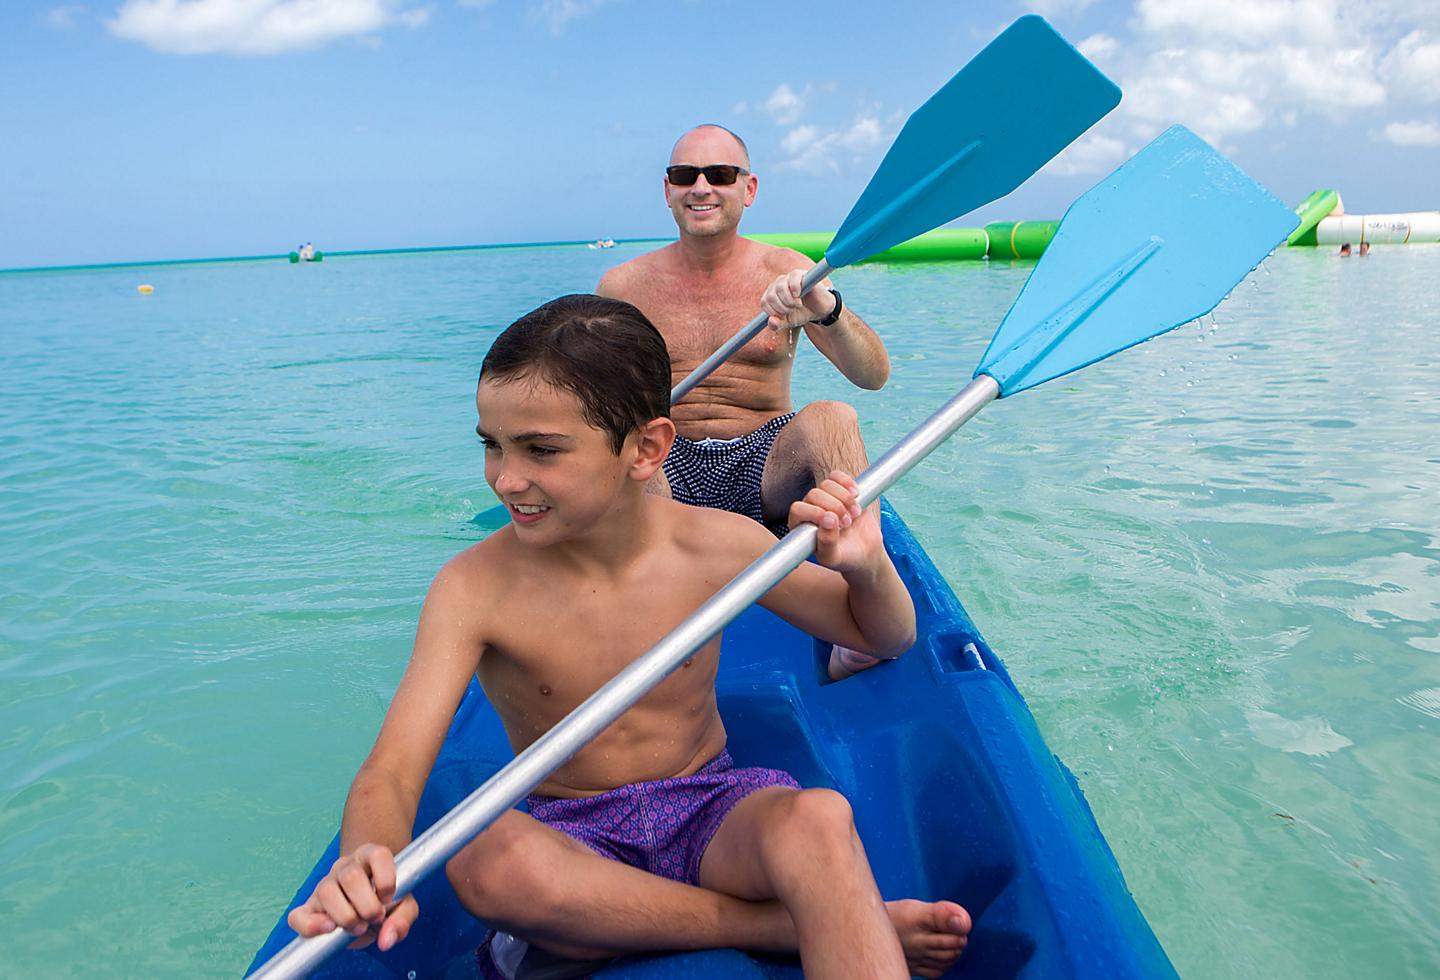 Father and Son Kayaking Through the Ocean